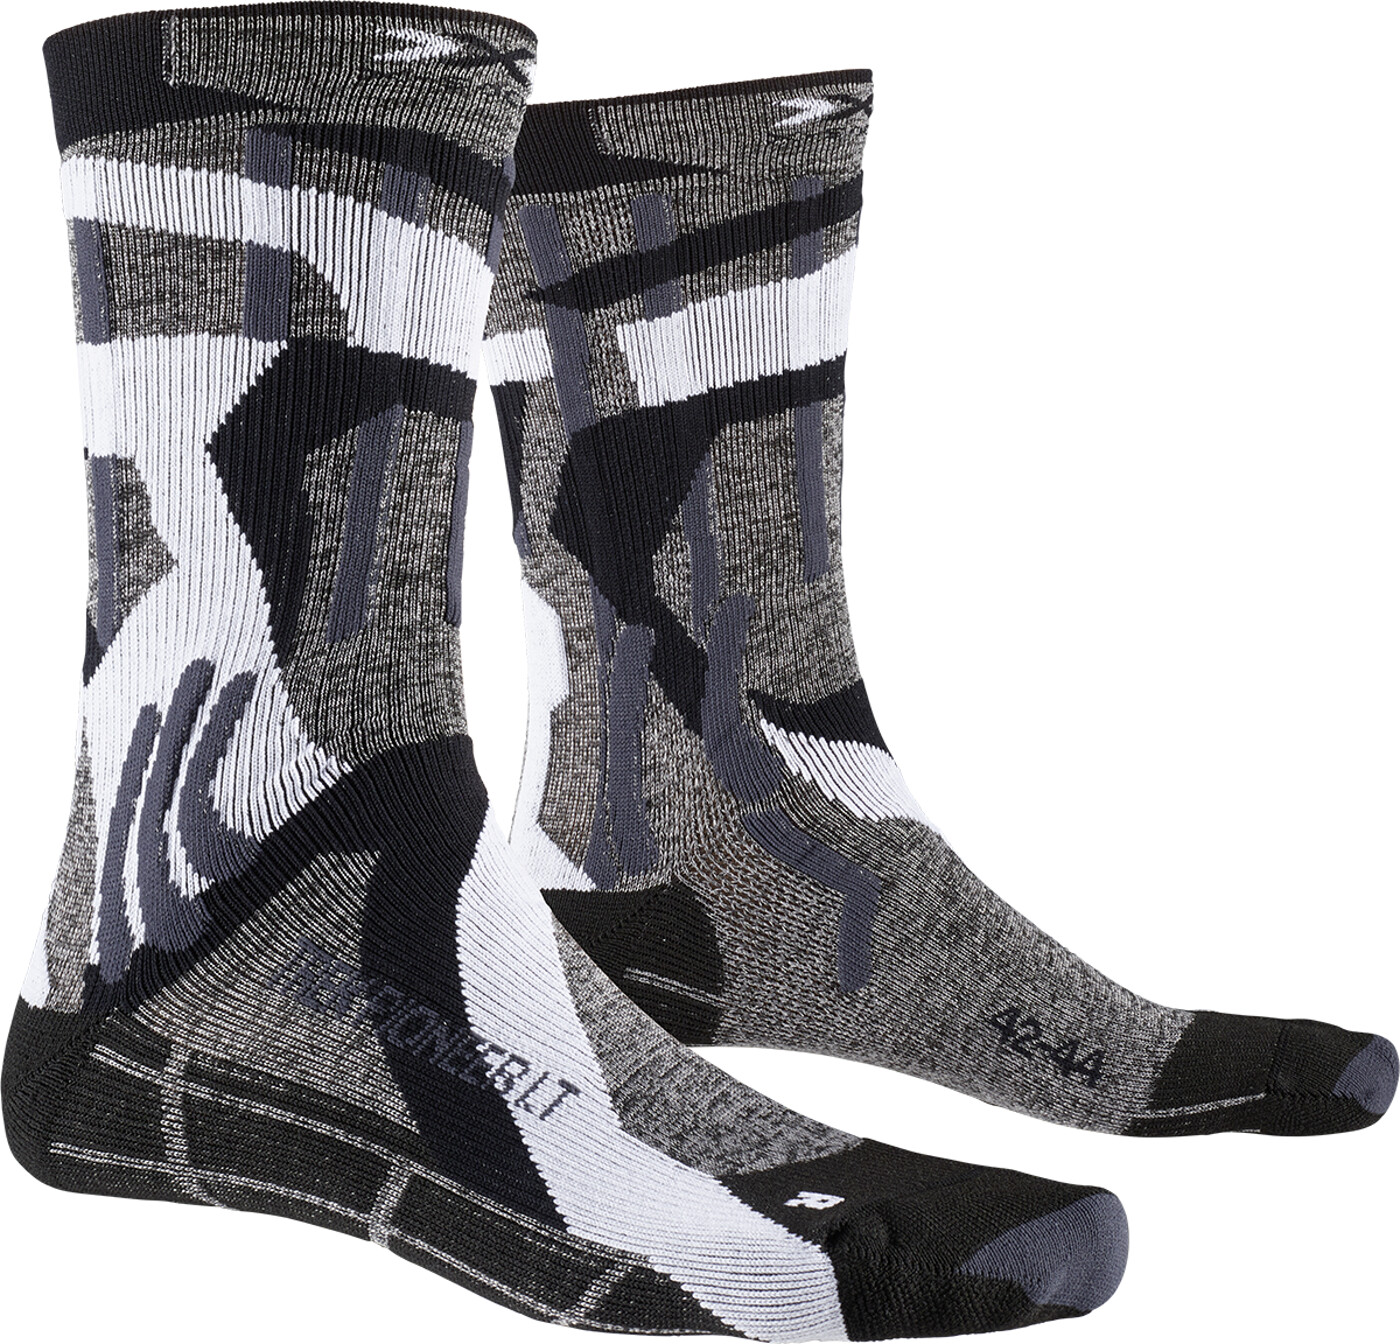 X-BIONIC X-SOCKS® TREK PIONEER LIGHT - Herren